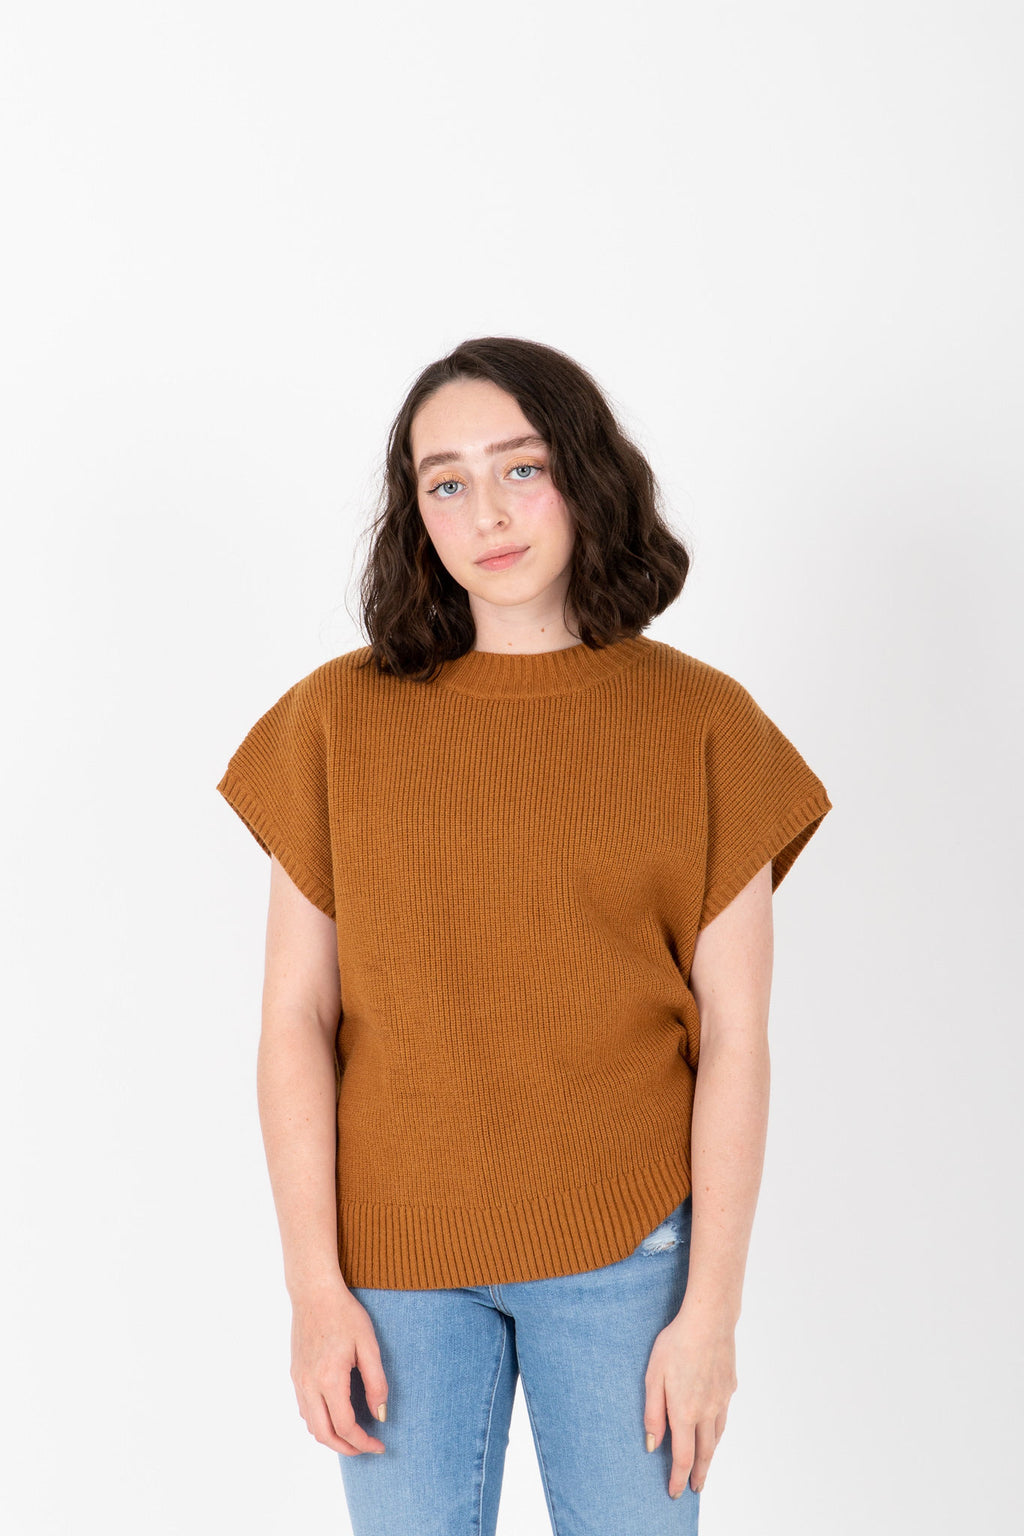 The Rook Short Sleeve Knit in Camel, studio shoot; front view